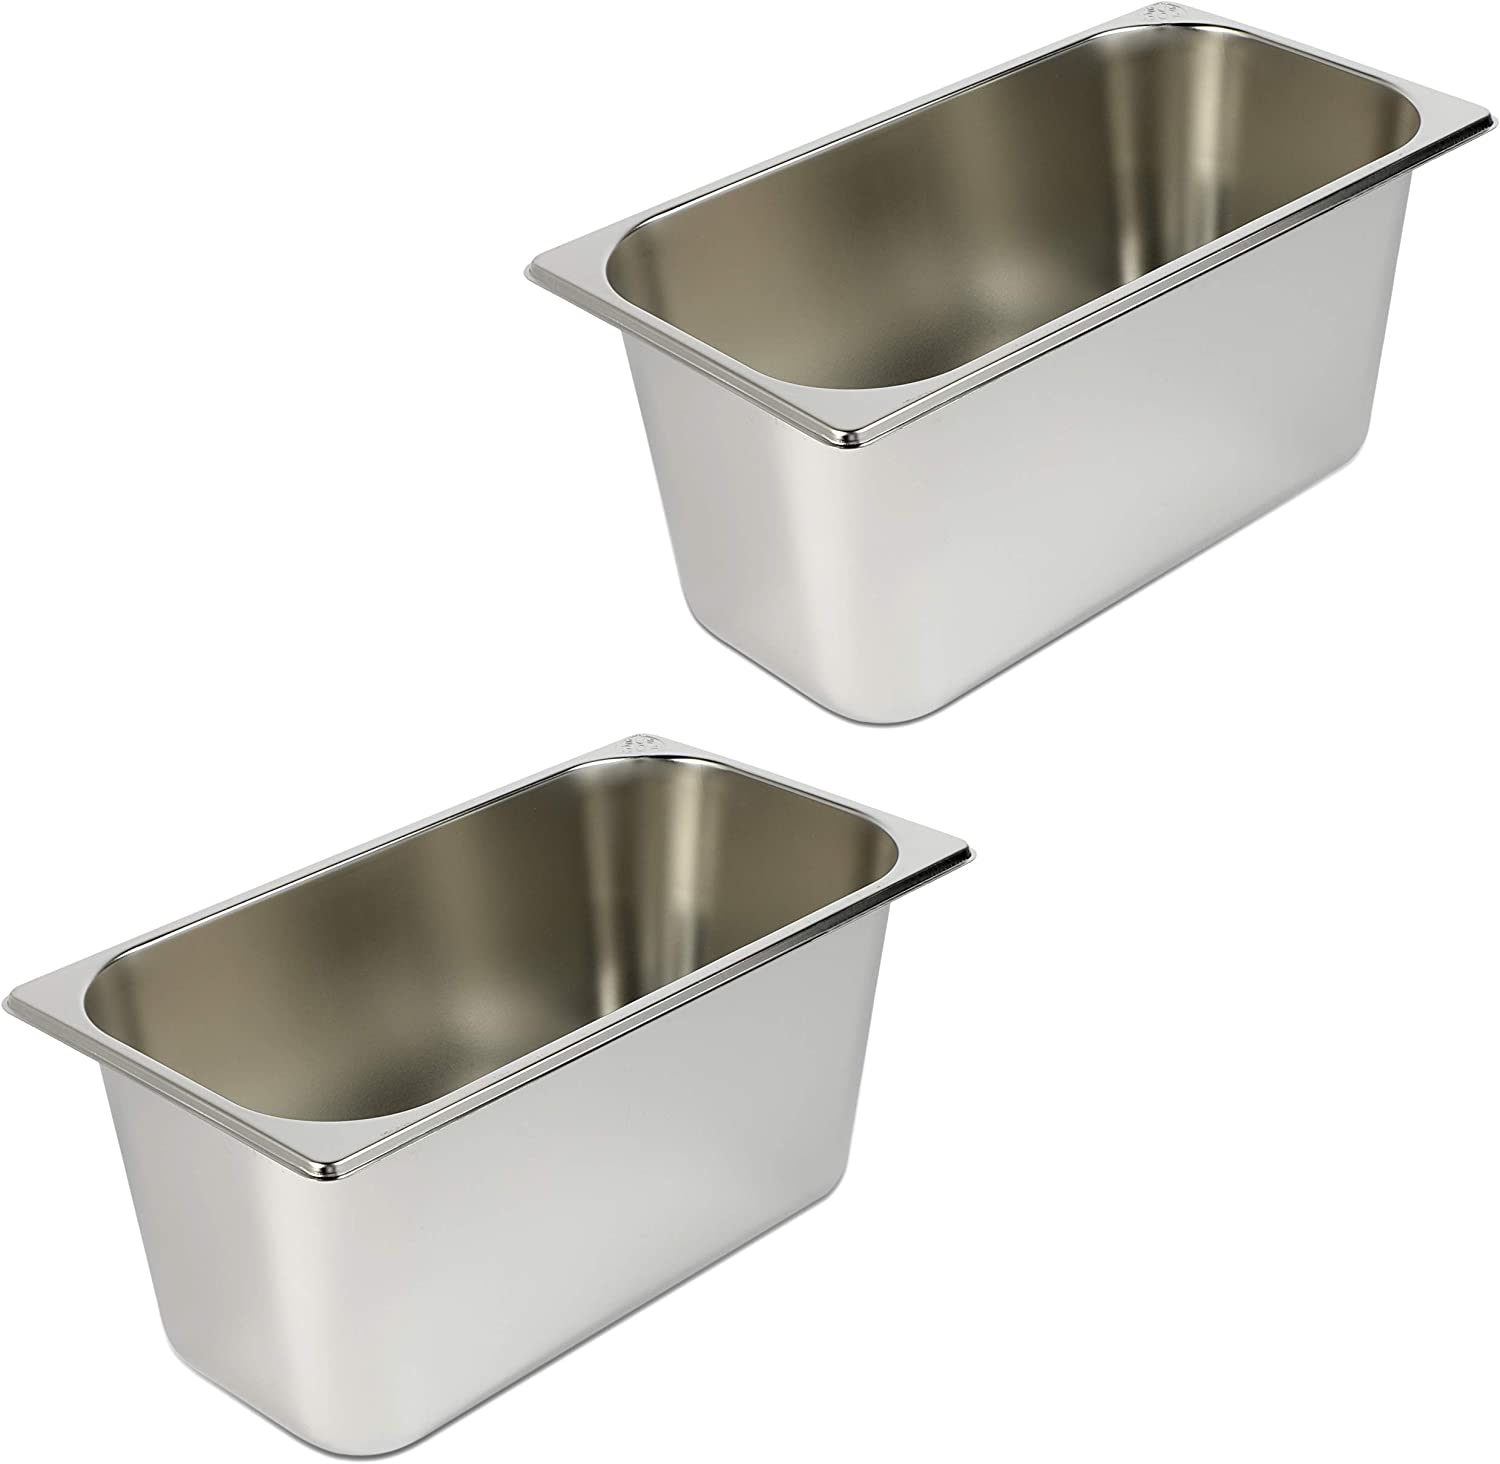 Steamer Table Chafer Pans for Buffet, Catering, 1/3 Size (12.8 x 7 In, 2 Pack)